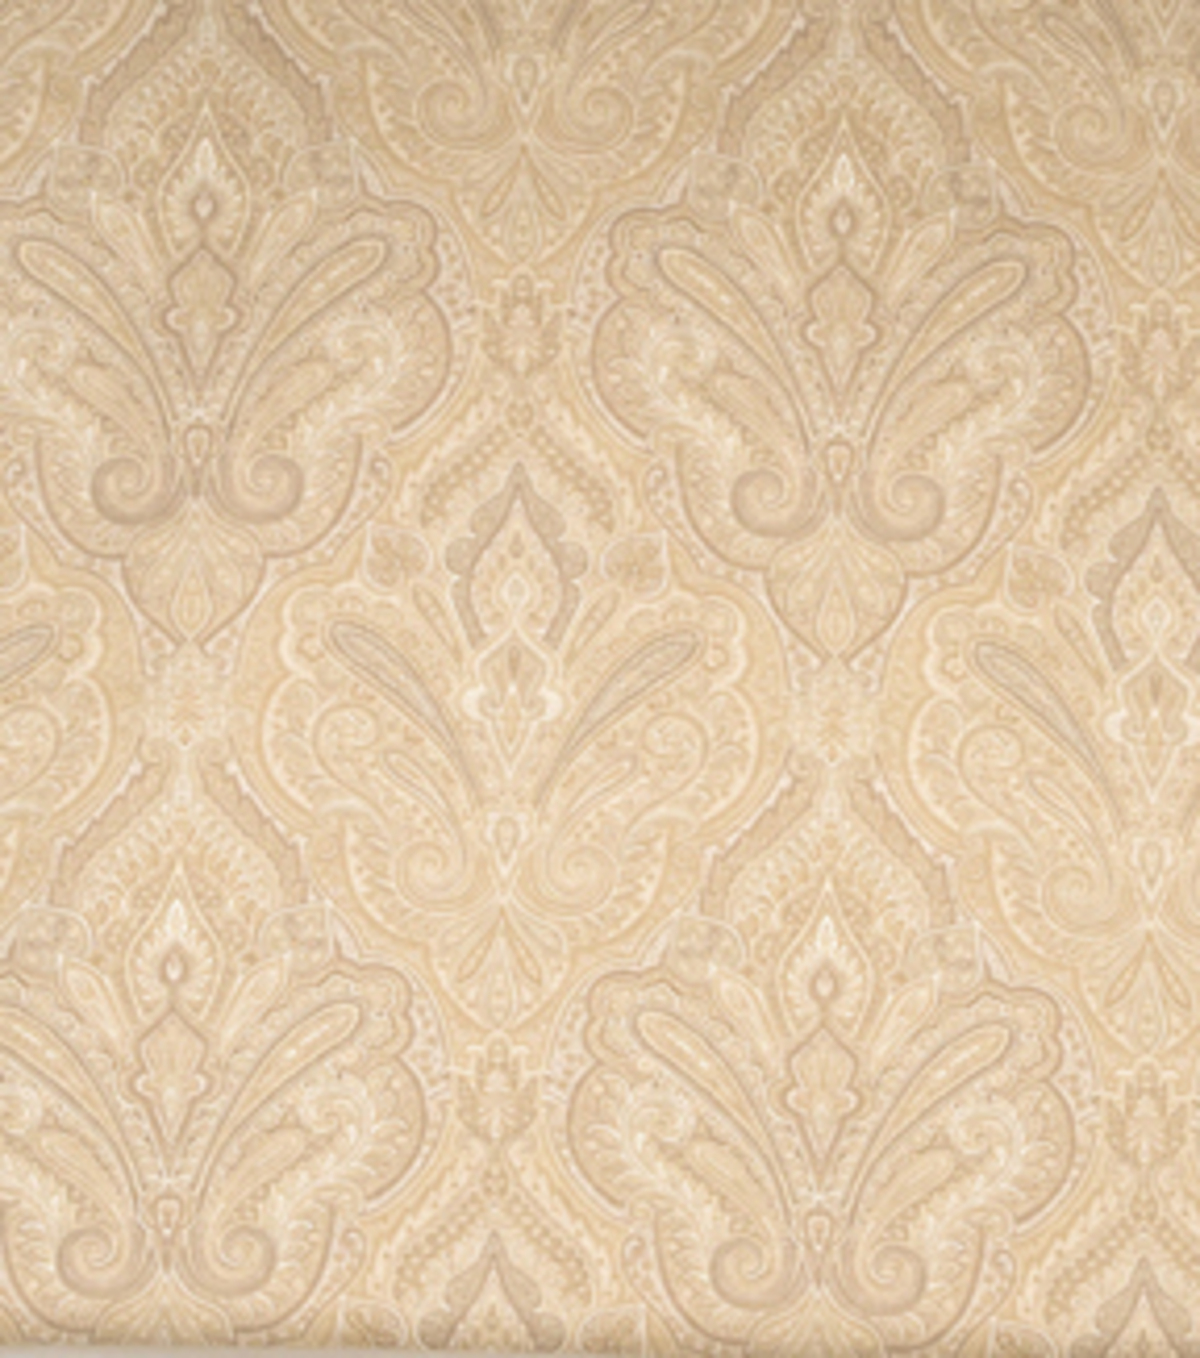 Home Decor 8\u0022x8\u0022 Fabric Swatch-Print Fabric Eaton Square Firefly Straw